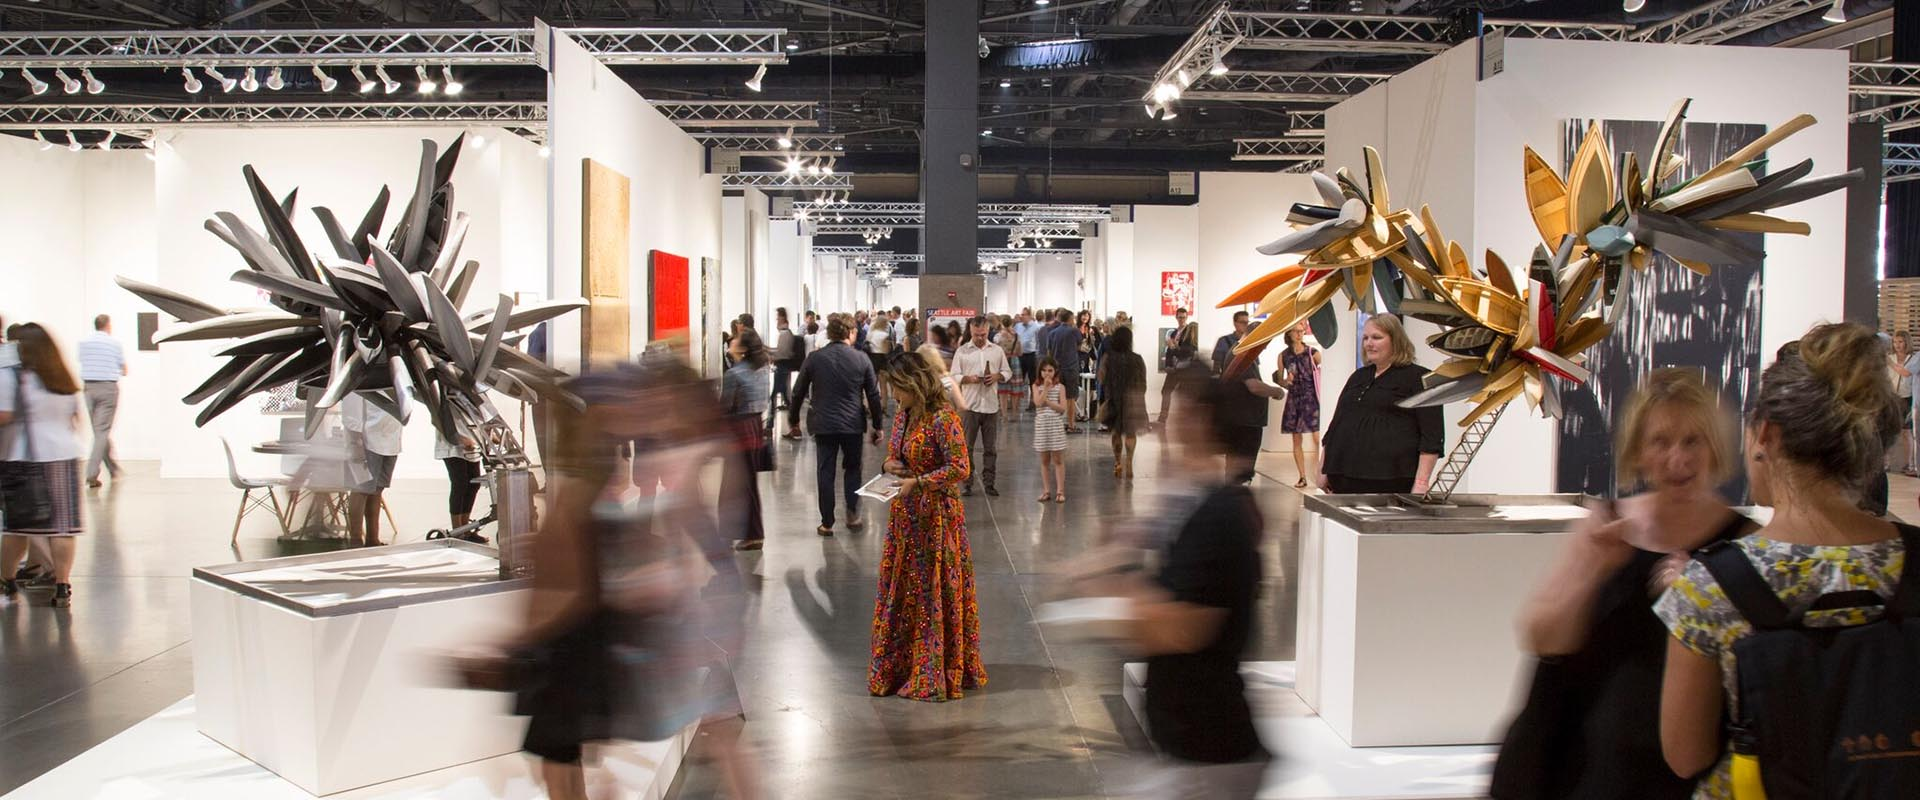 Installation view of Seattle Art Fair 2019